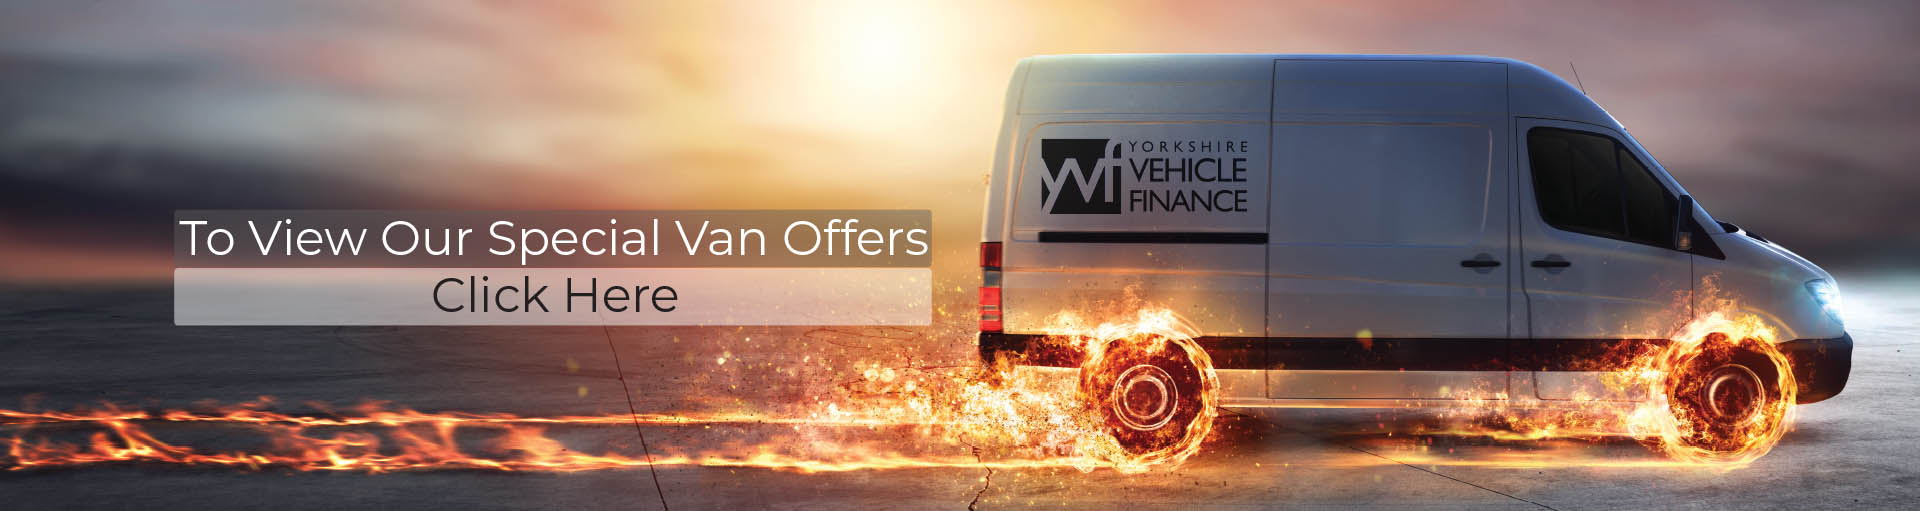 To View Our Special Van Offers Click Here